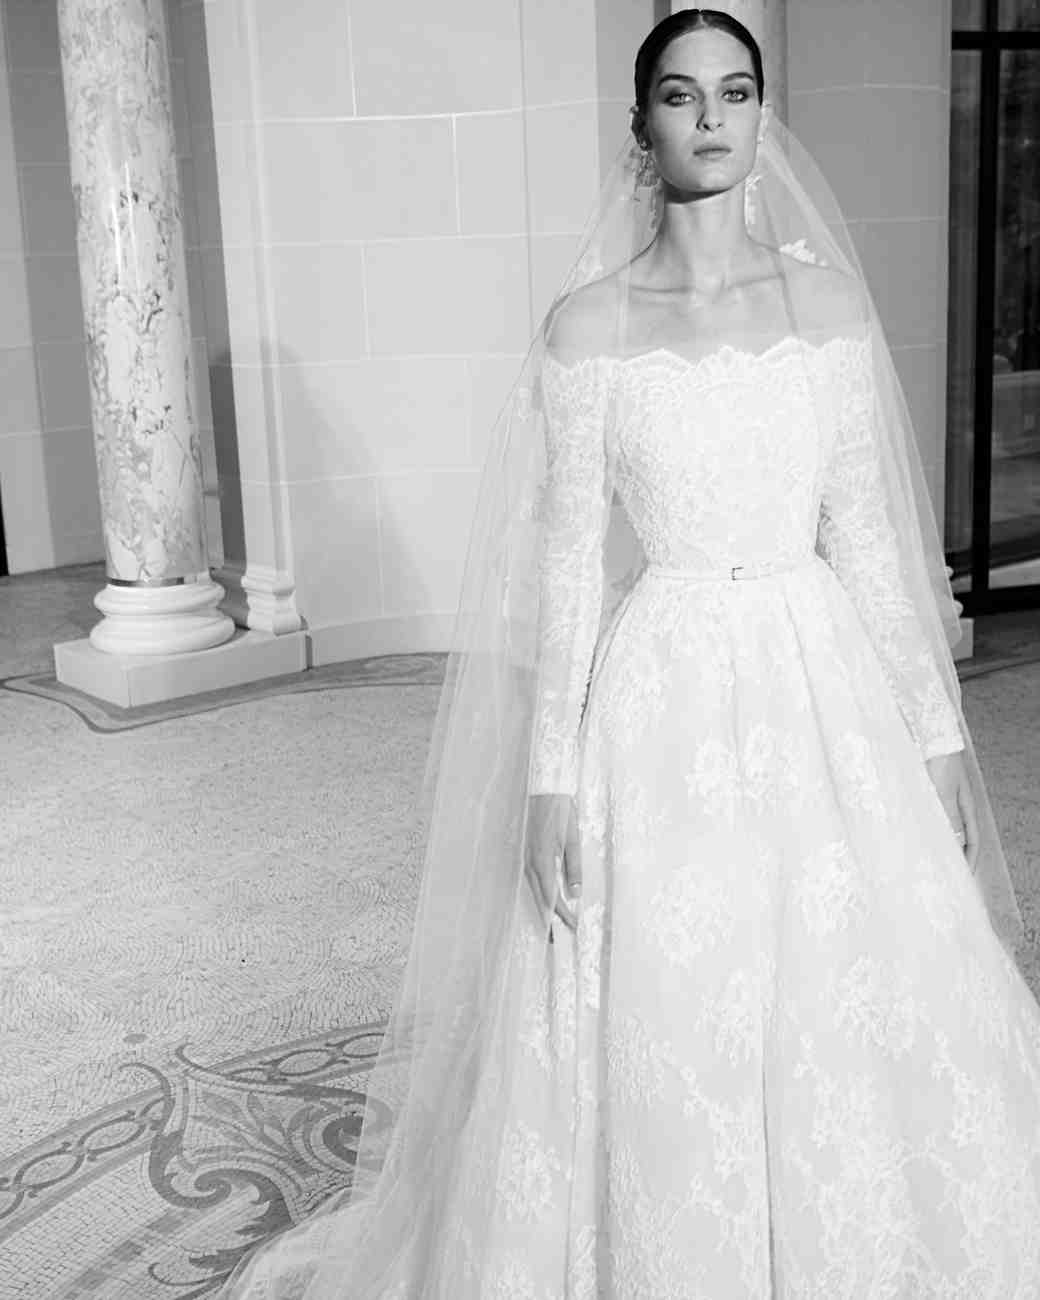 Sleeve Long wedding dress pictures advise to wear in summer in 2019